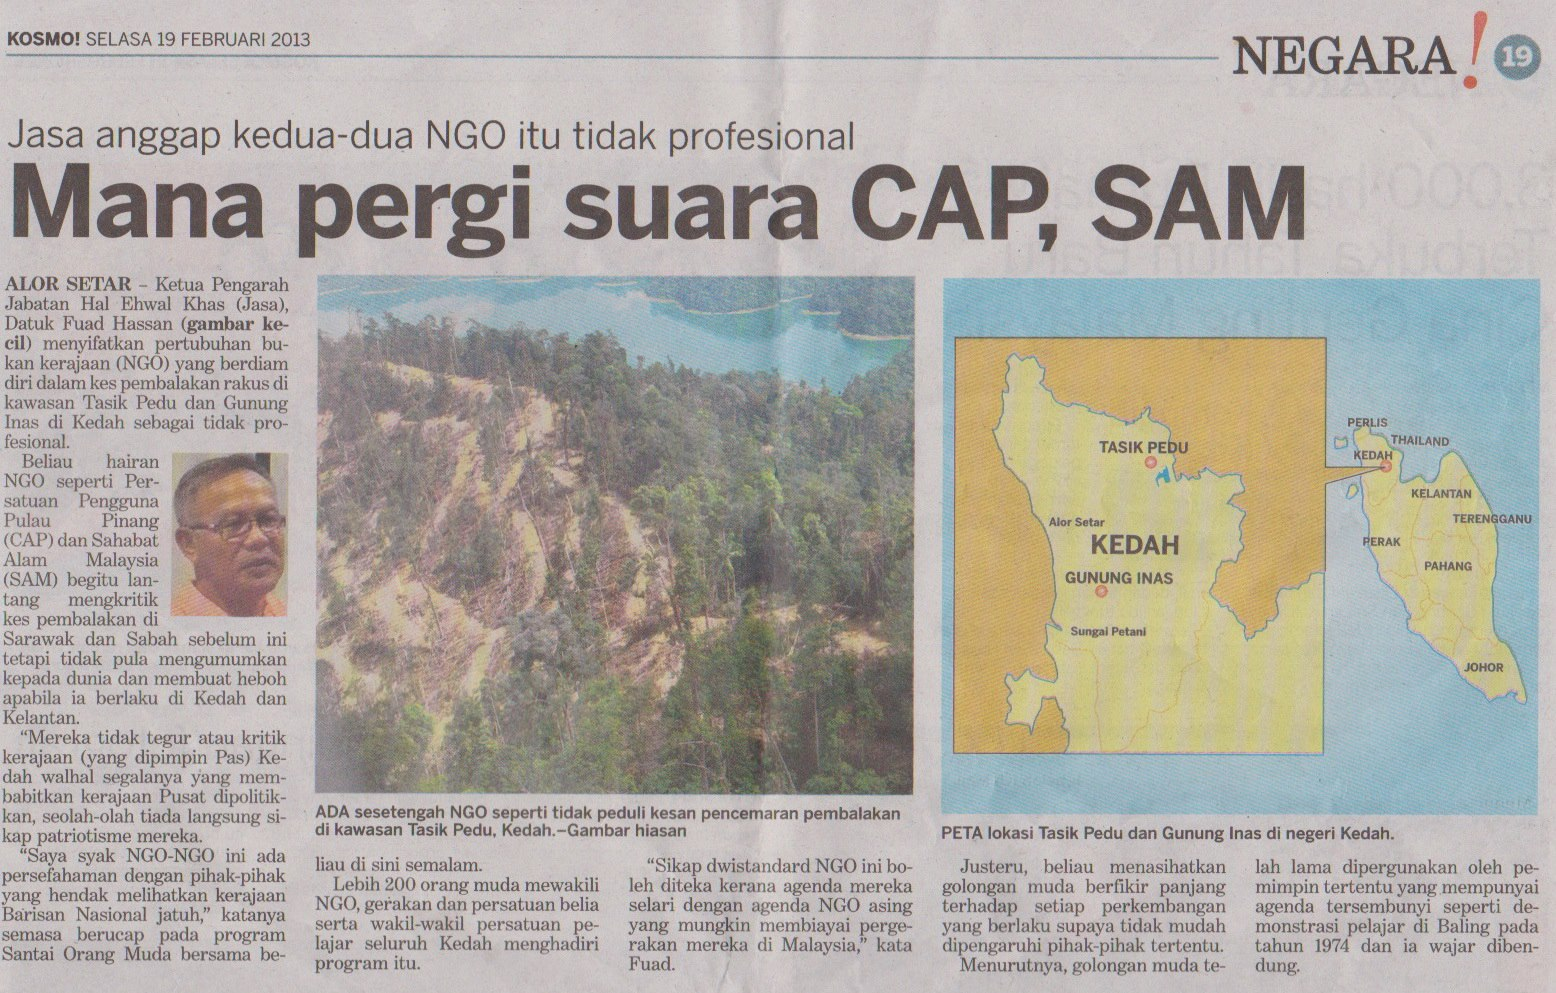 Article in KOSMO